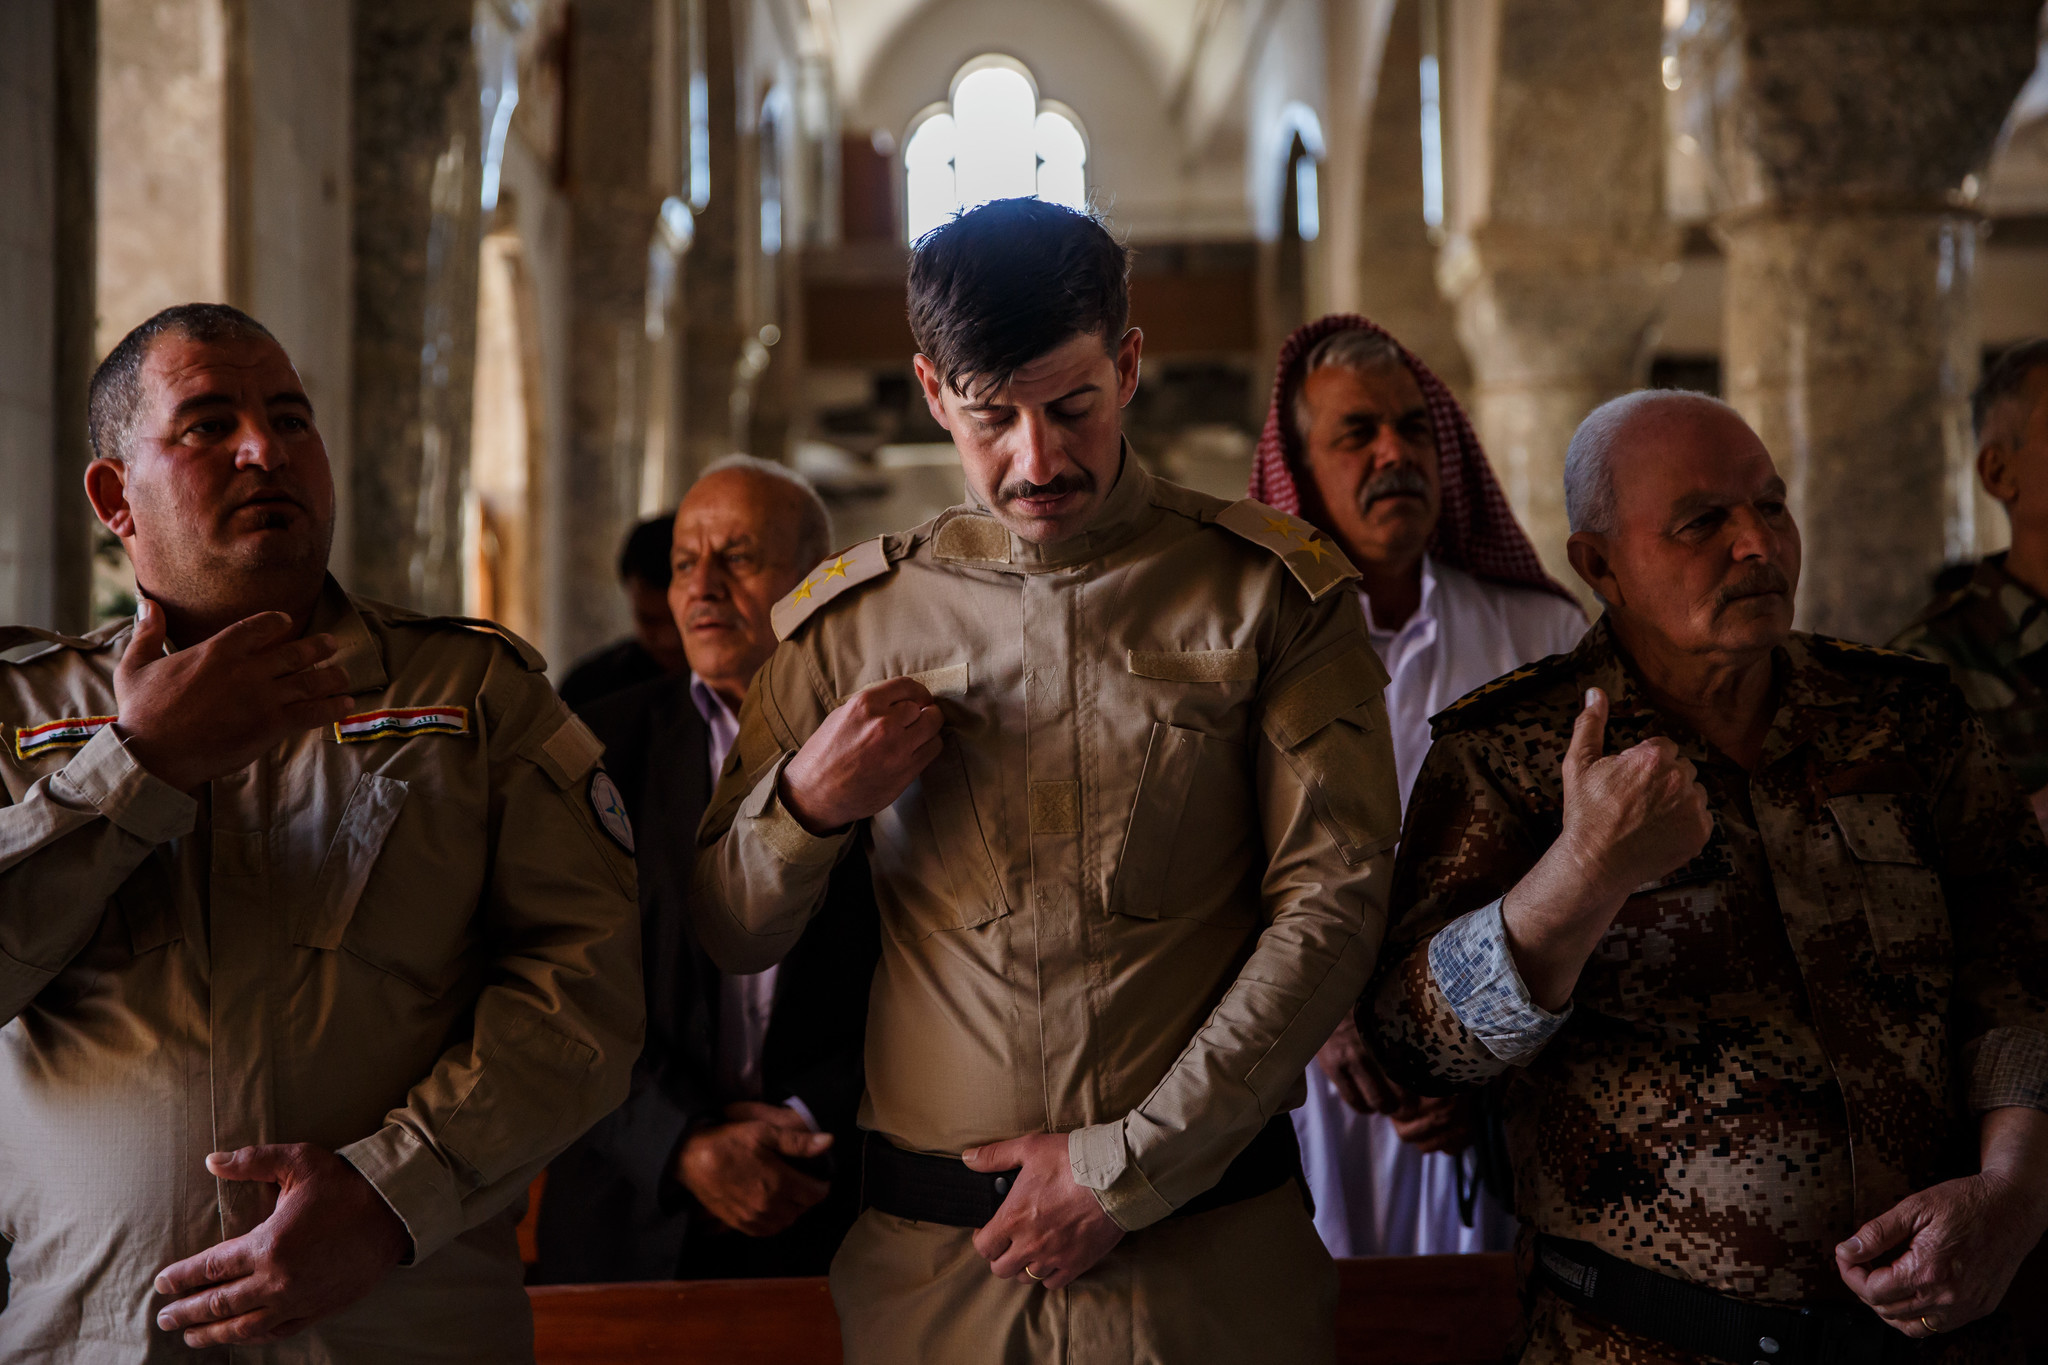 The Beleaguered State Of Christians In The Middle East